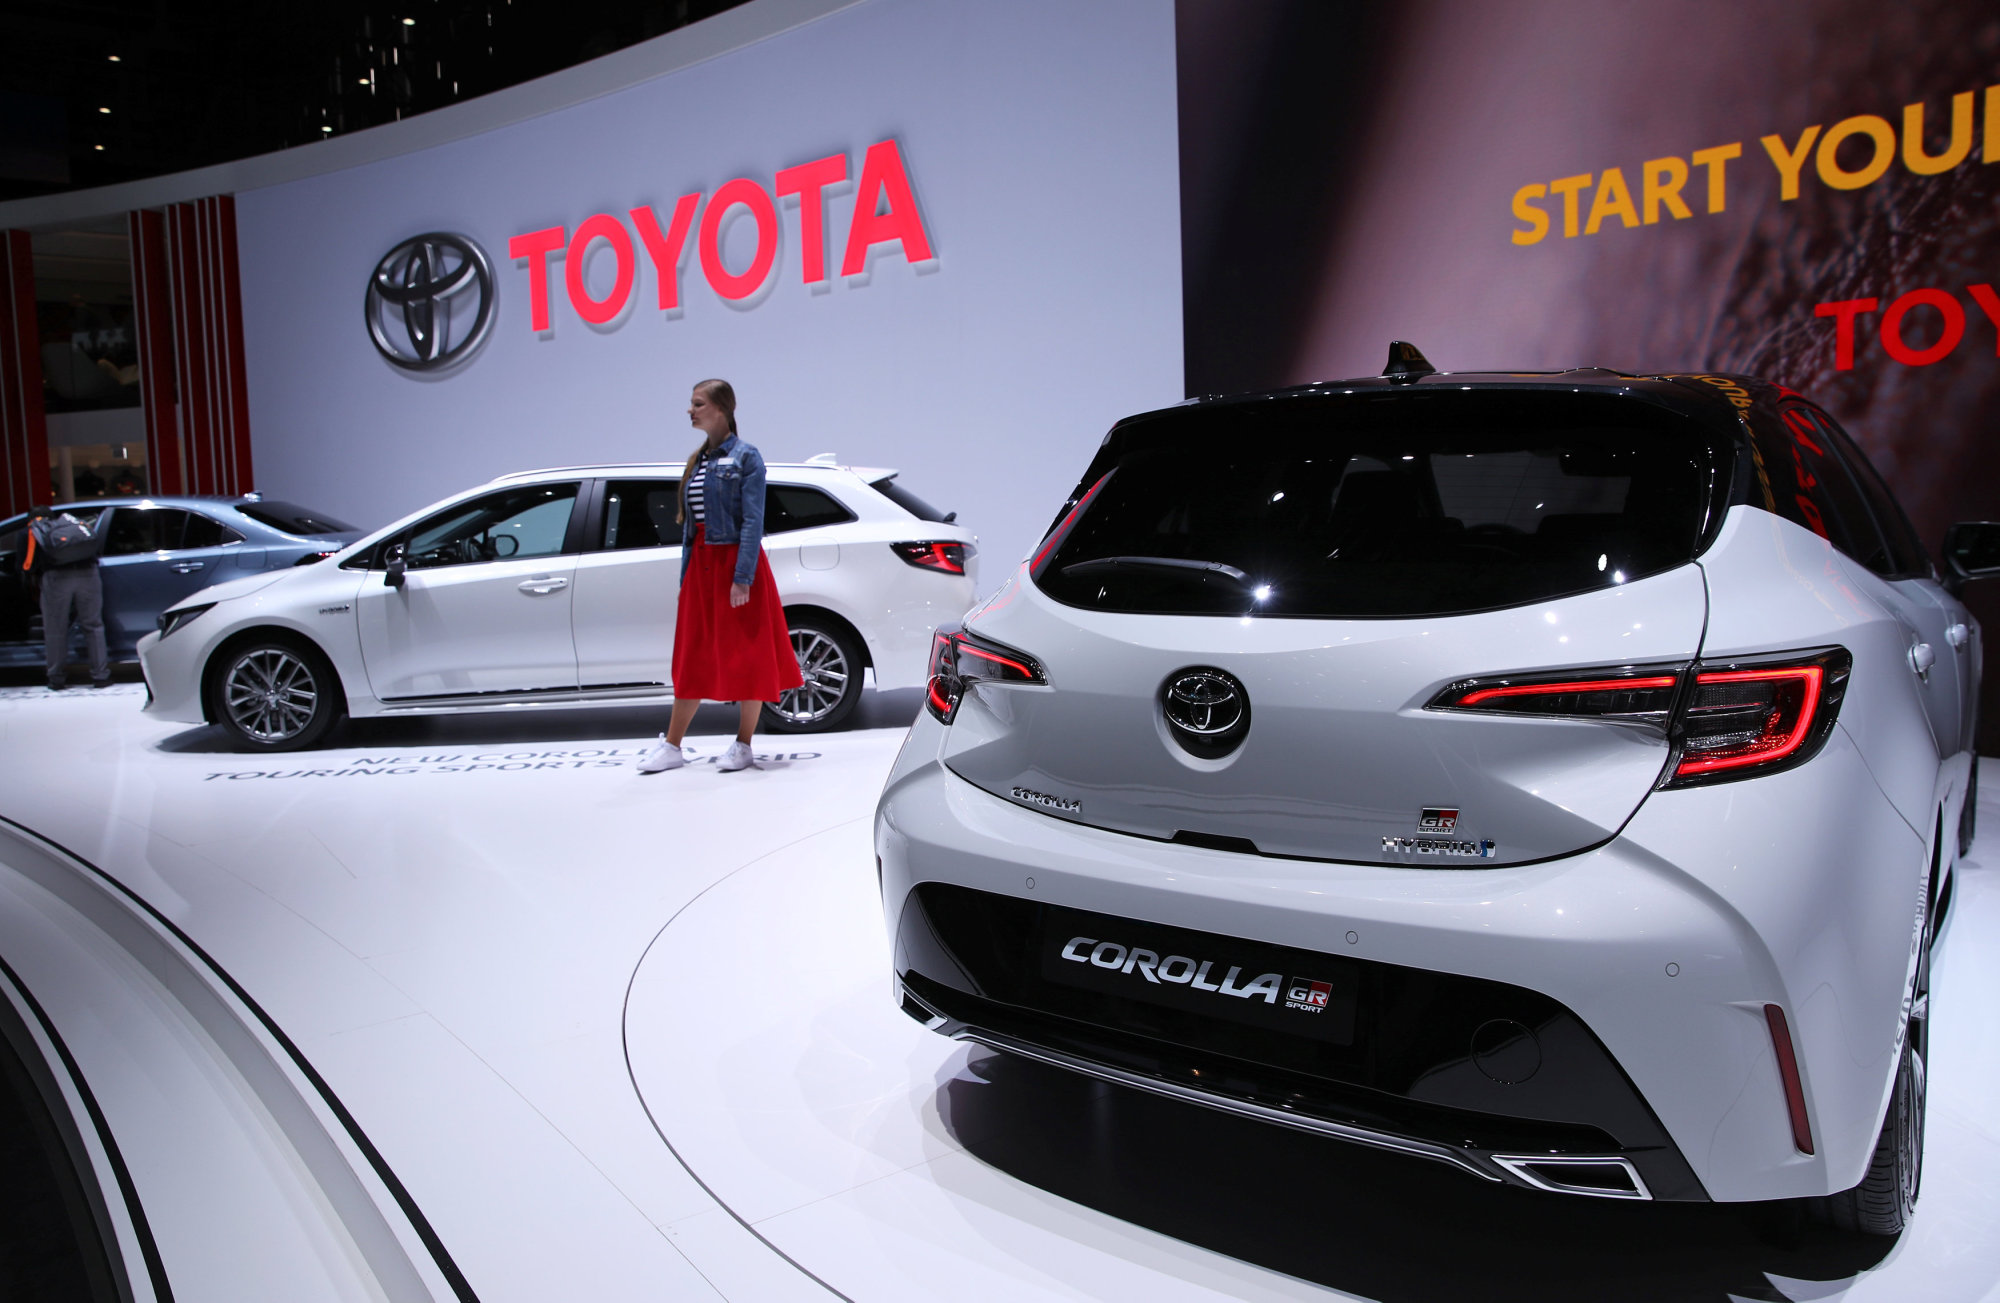 The new Toyota Corolla is displayed at the 89th Geneva International Motor Show on Tuesday.   REUTERS